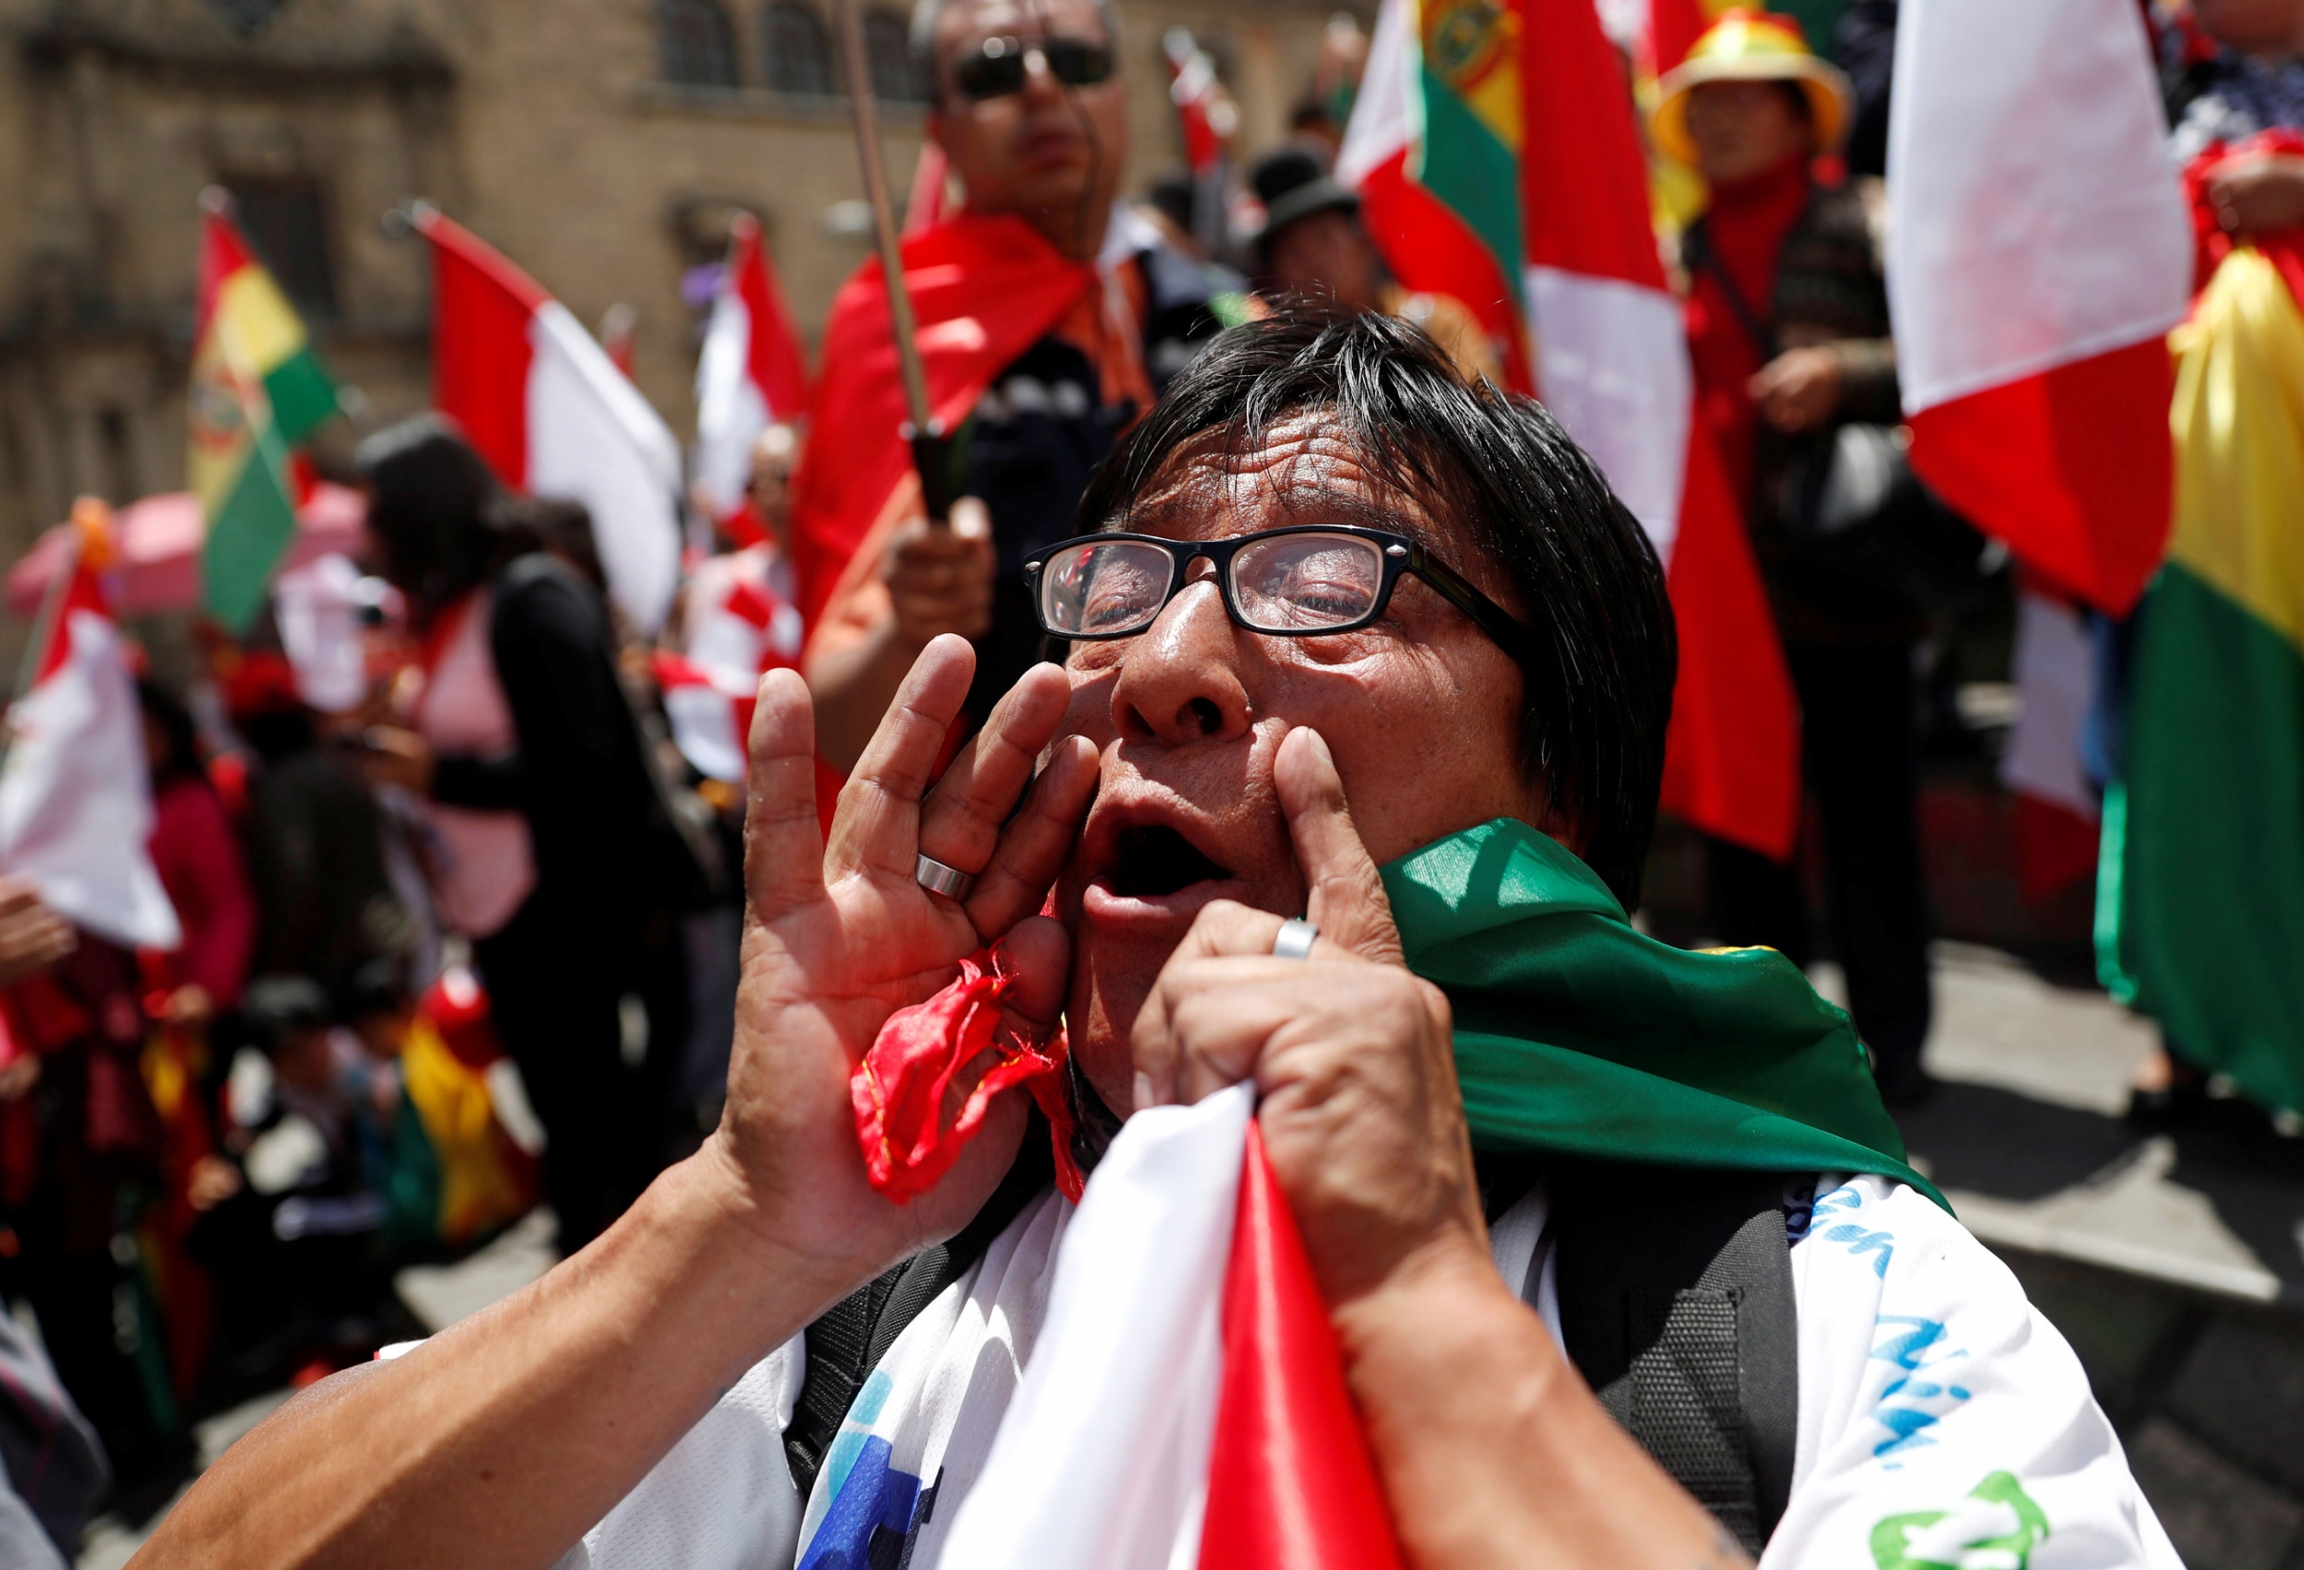 A demonstrator is shown with their hands around their mouth shouting and holding a Bolivian flag.